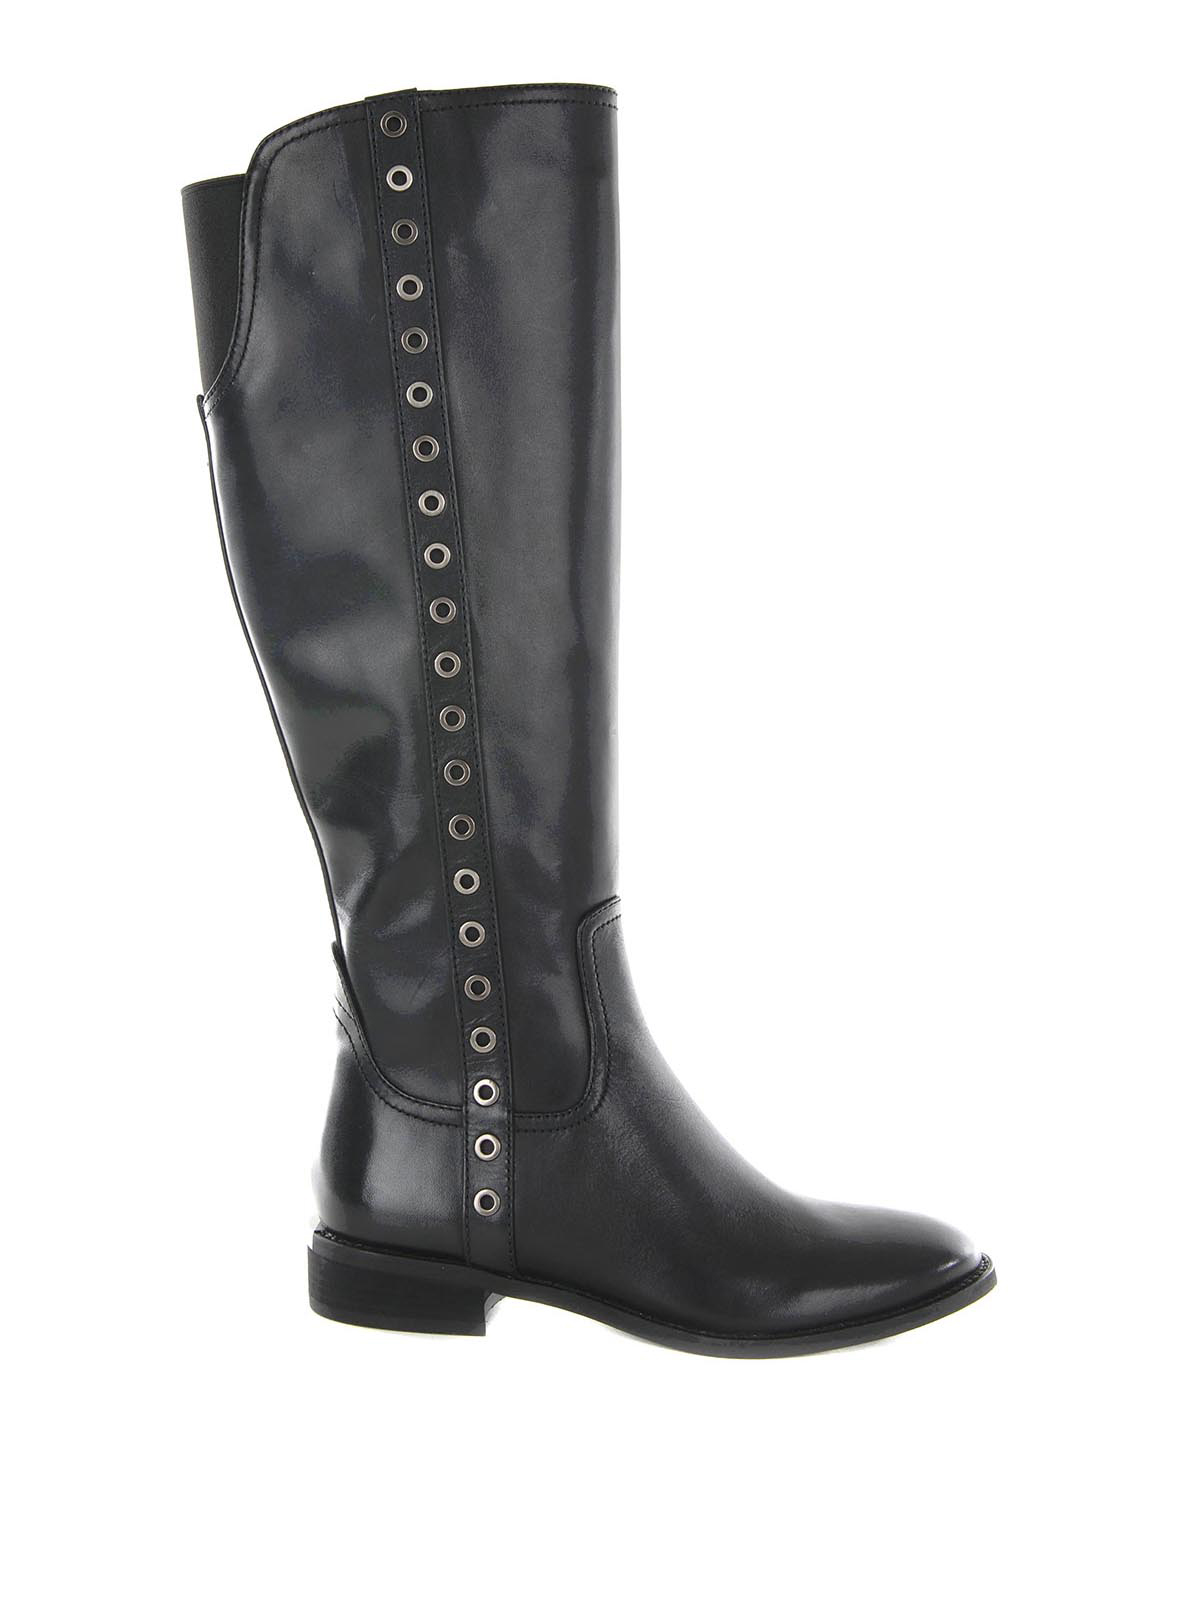 eyelets detailed leather boots by michael kors boots ikrix. Black Bedroom Furniture Sets. Home Design Ideas